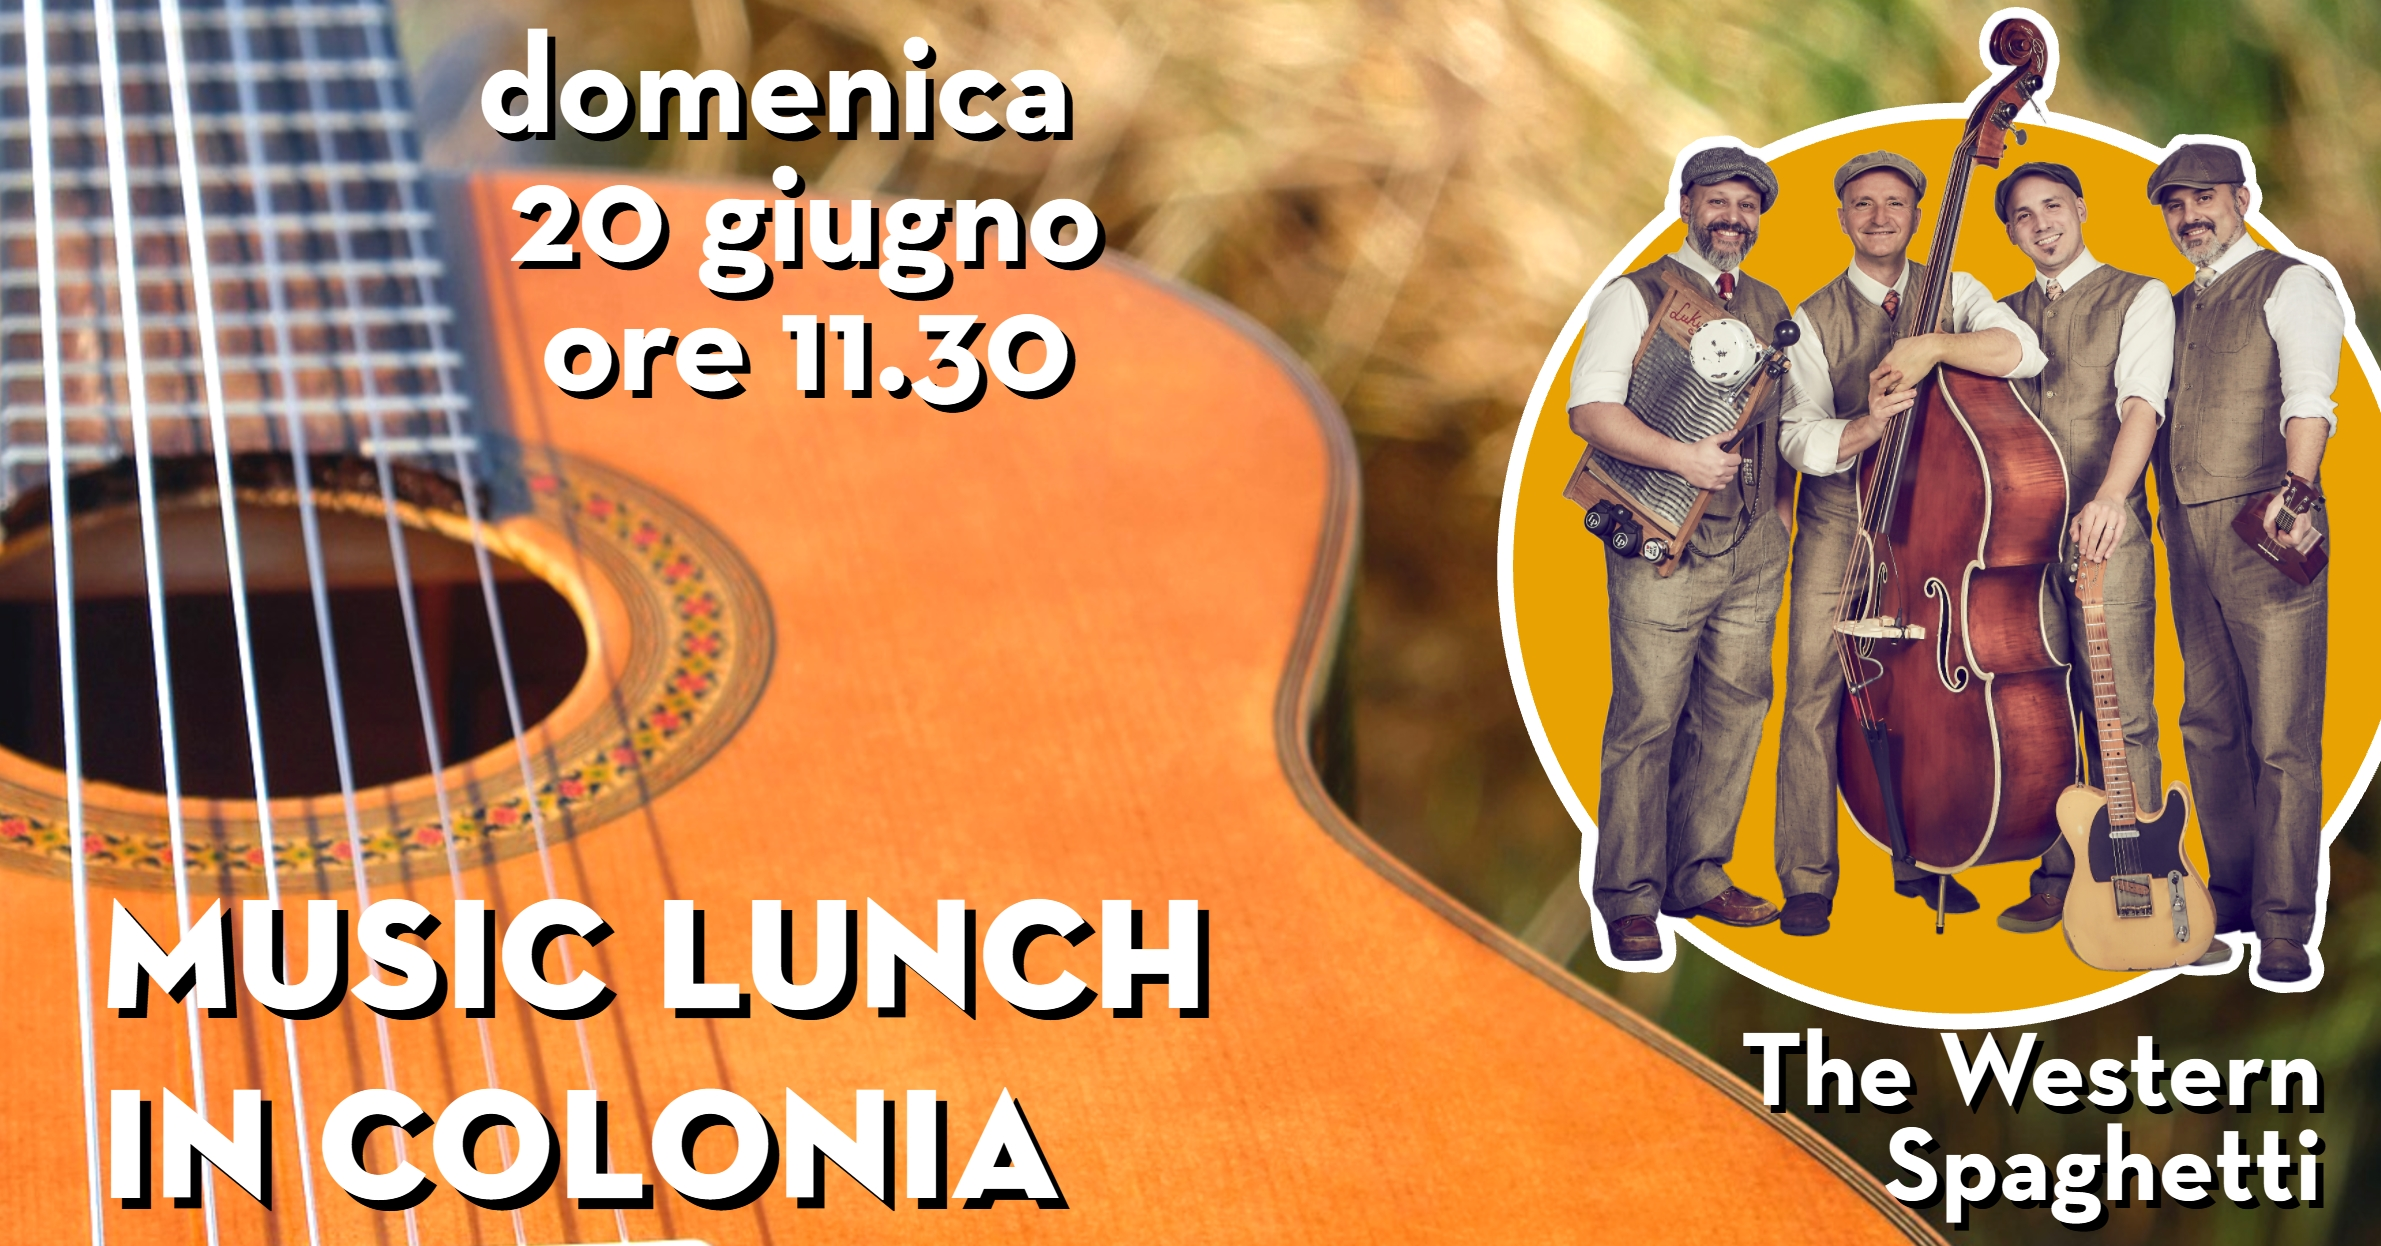 MUSIC LUNCH IN COLONIA